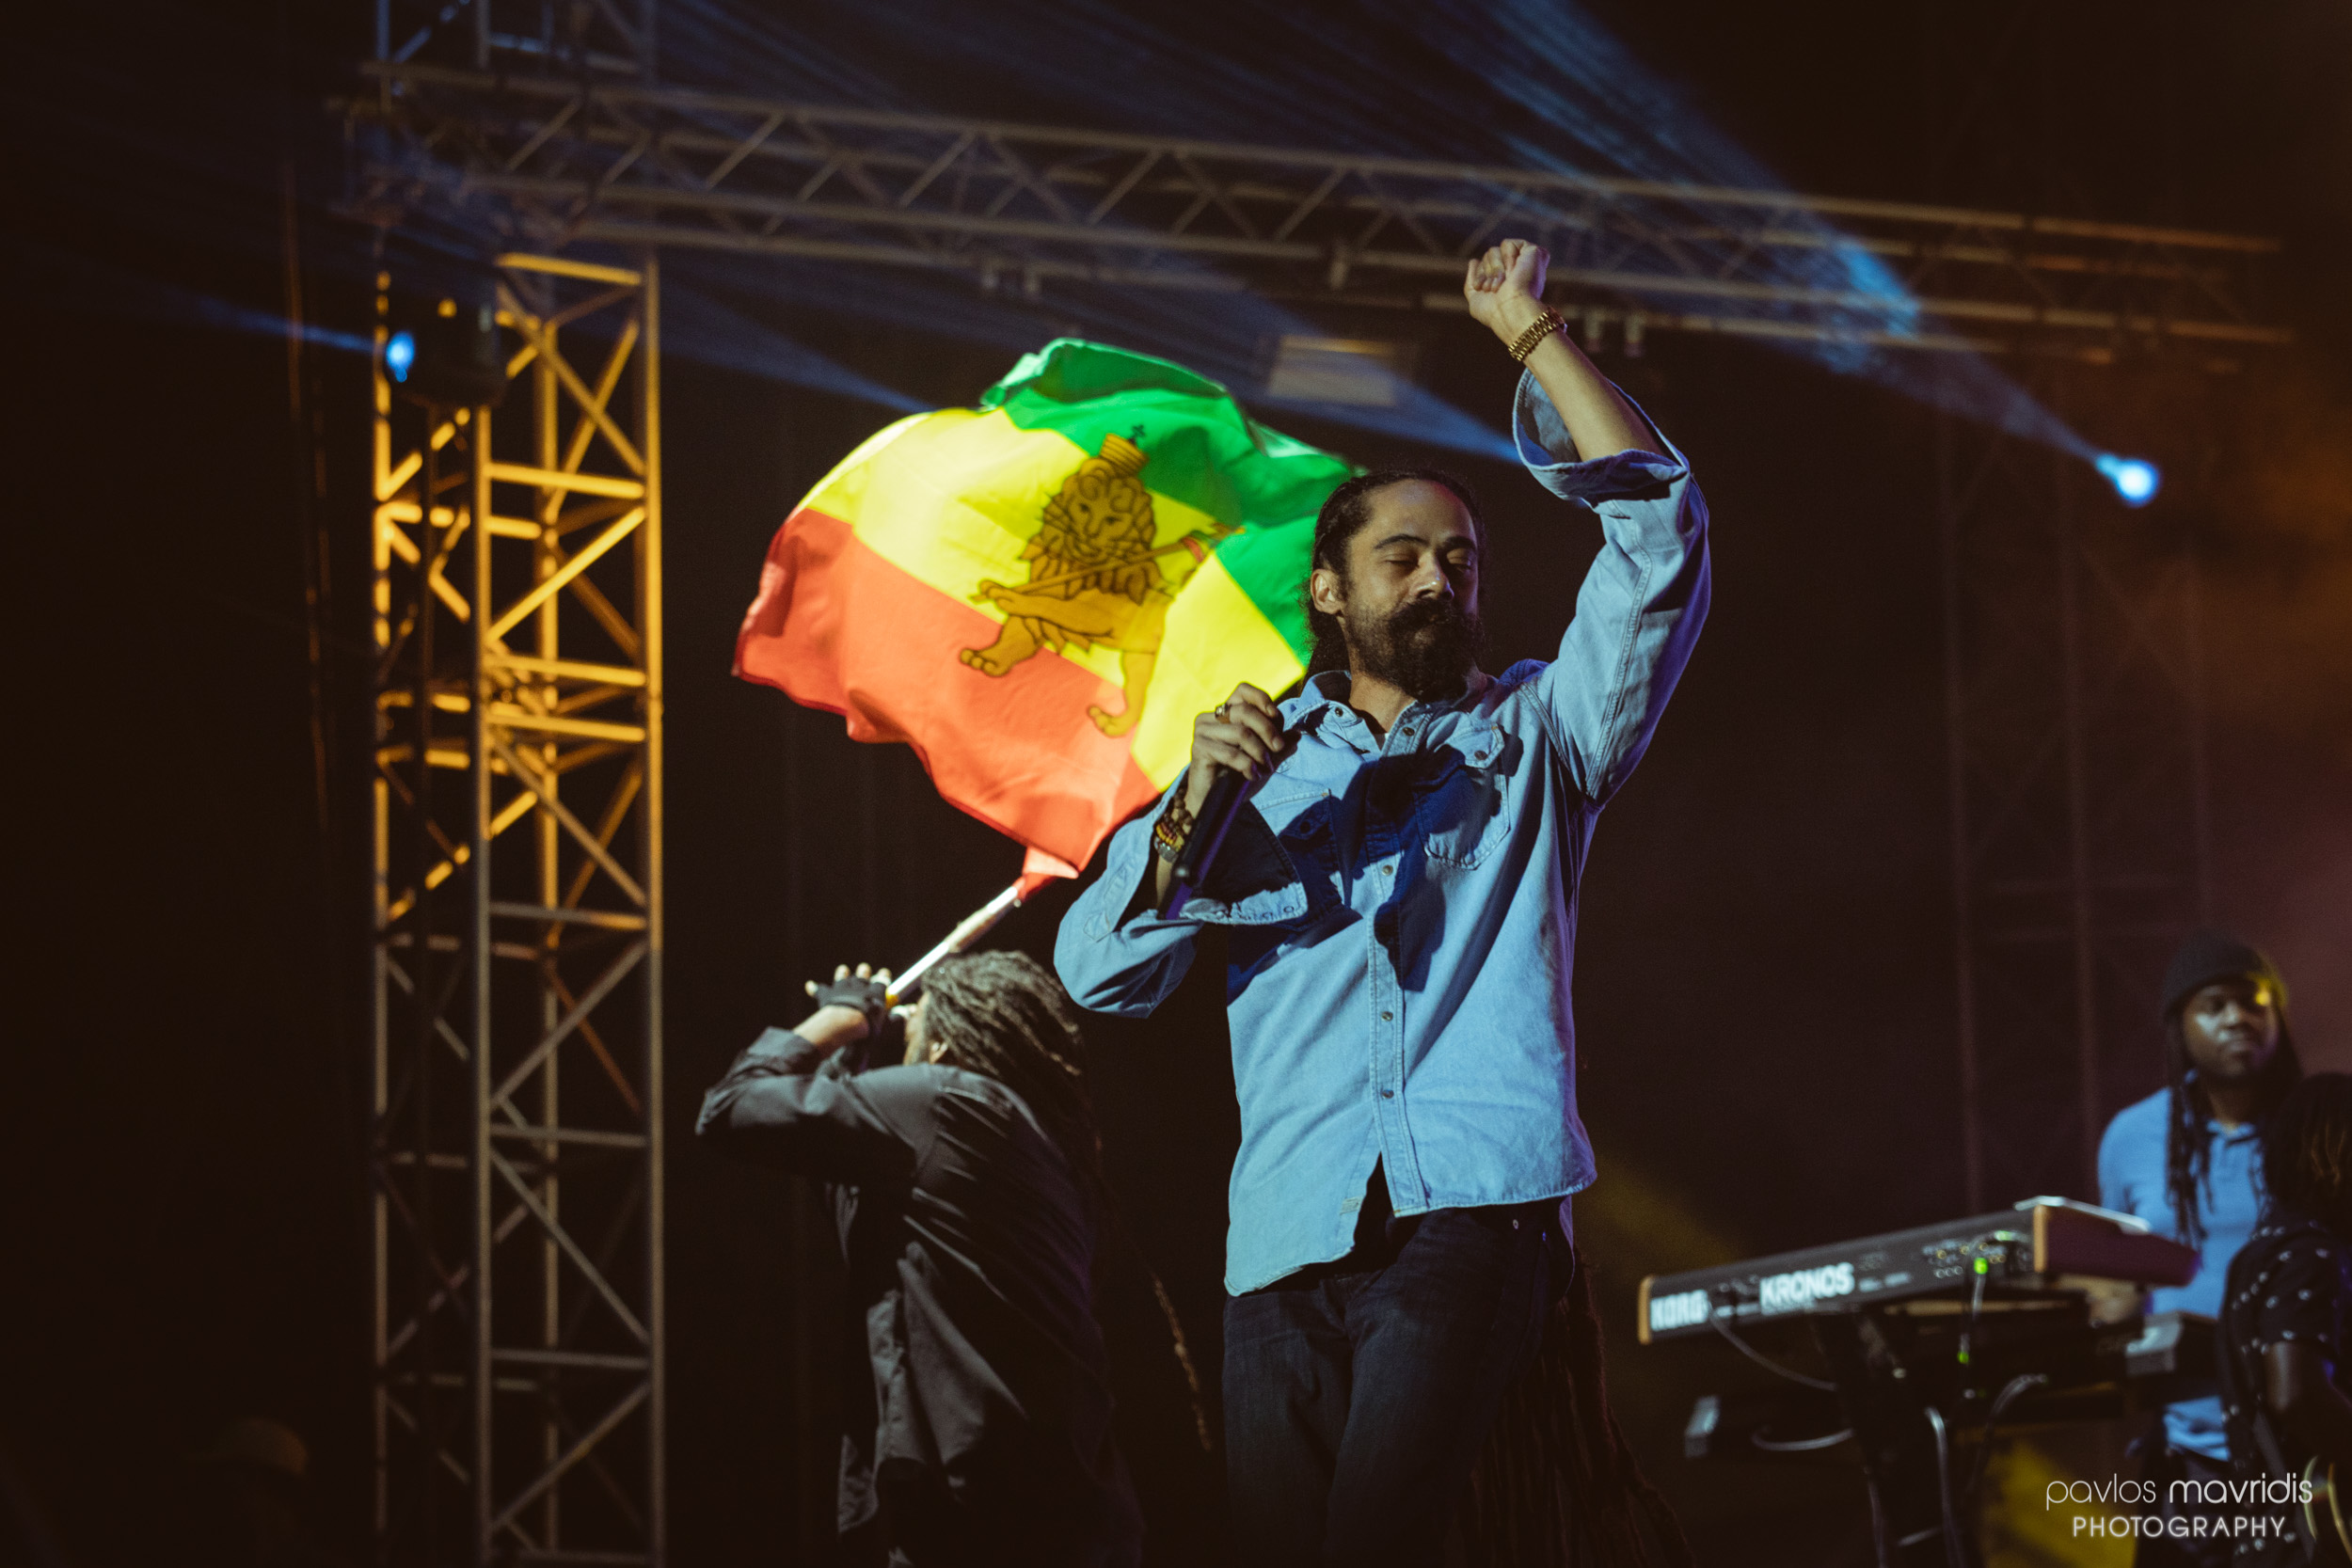 Release Athens 2019 μέρα #1 με Damian Jr. Gong Marley